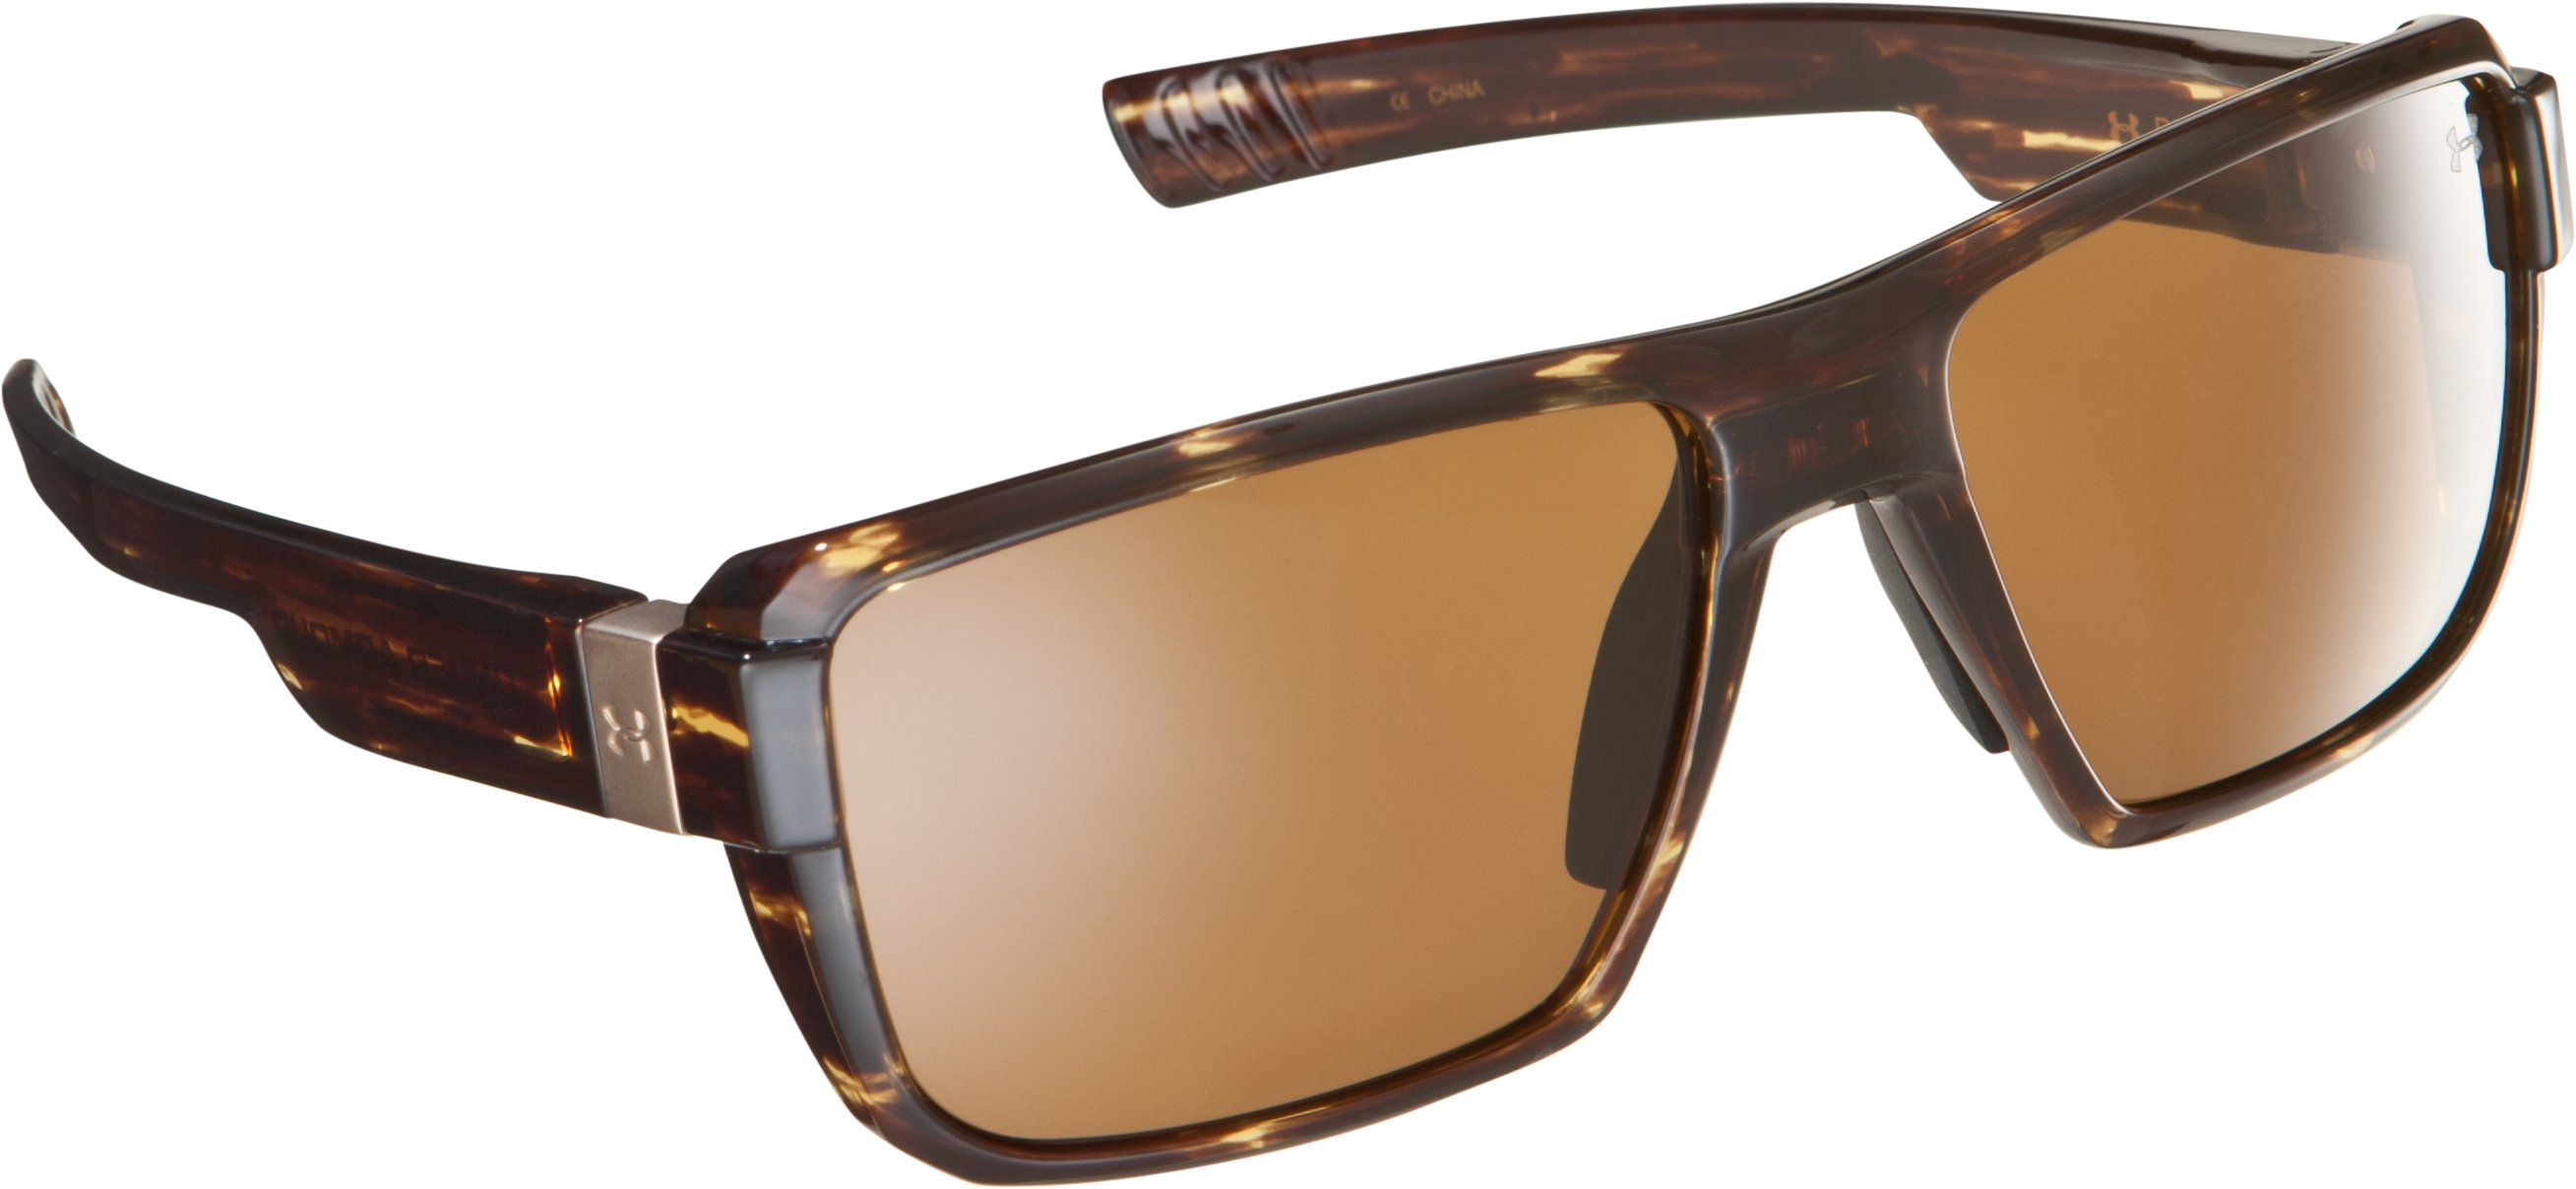 Women's UA Recon Sunglasses, Fire Tortoise, undefined